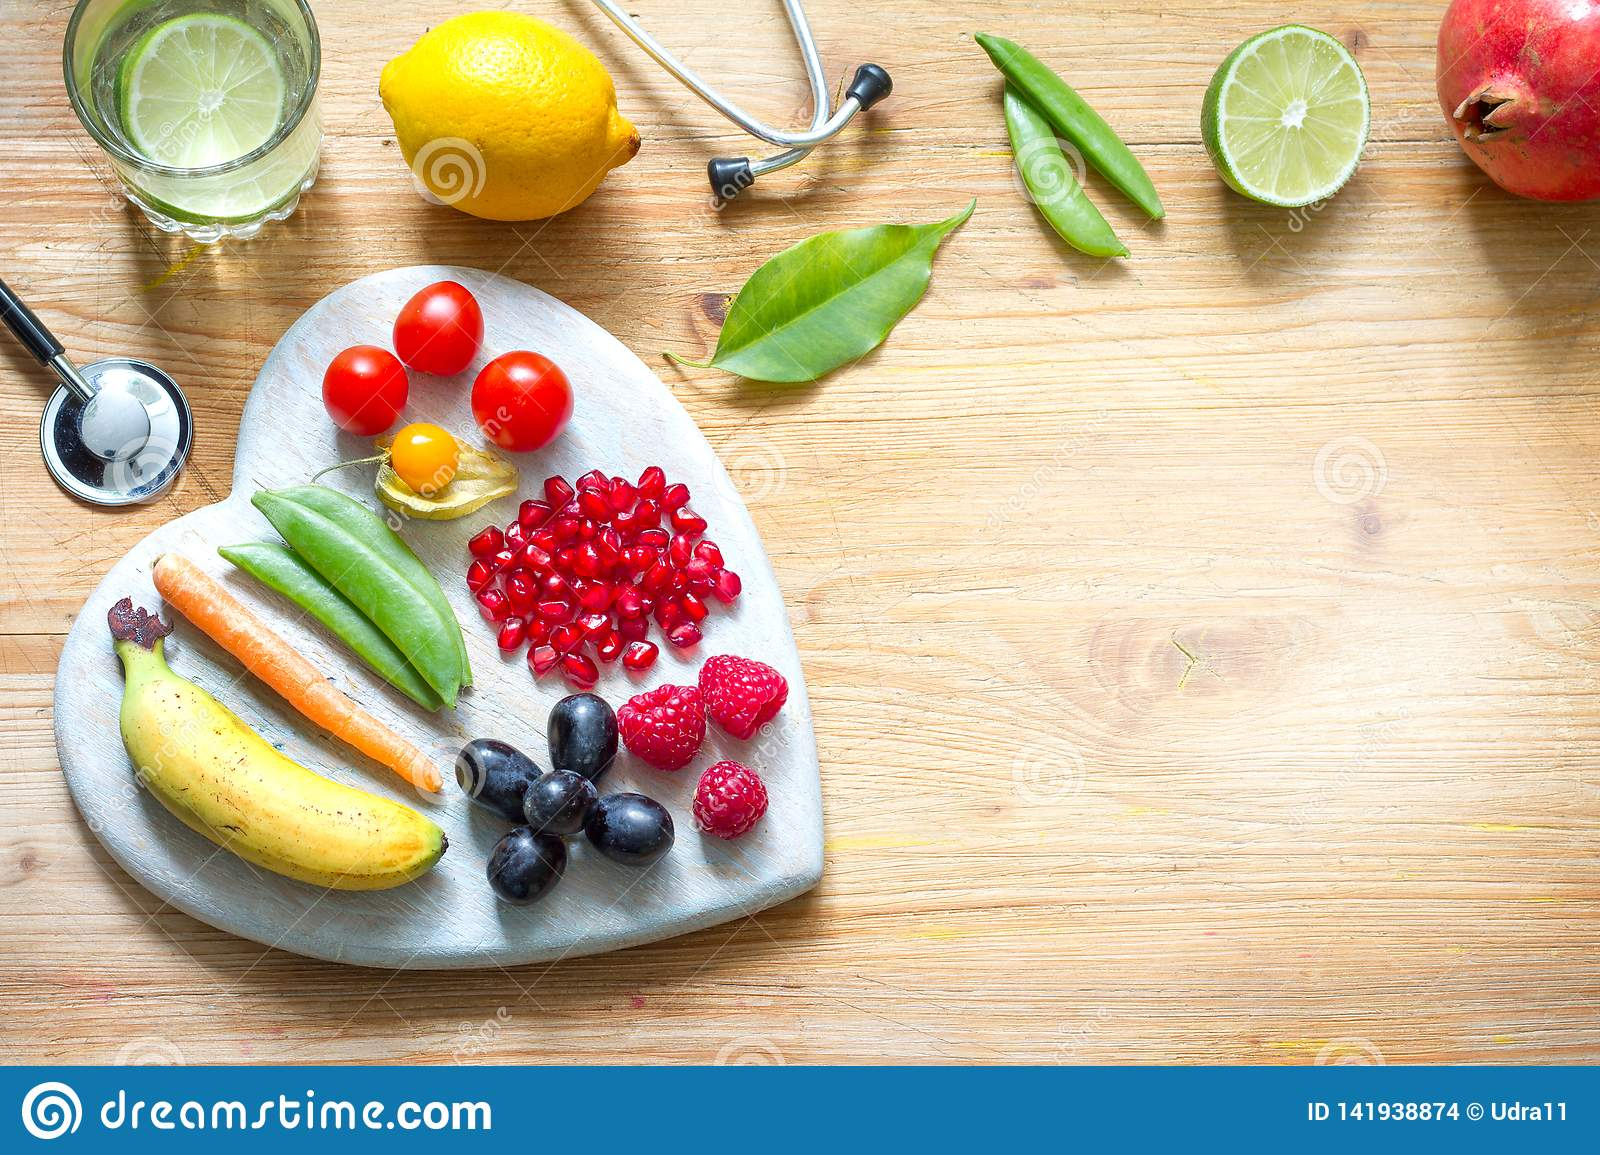 Healthy lifestyle vegetarian food in heart and stethoscope with water alternative medicine background concept